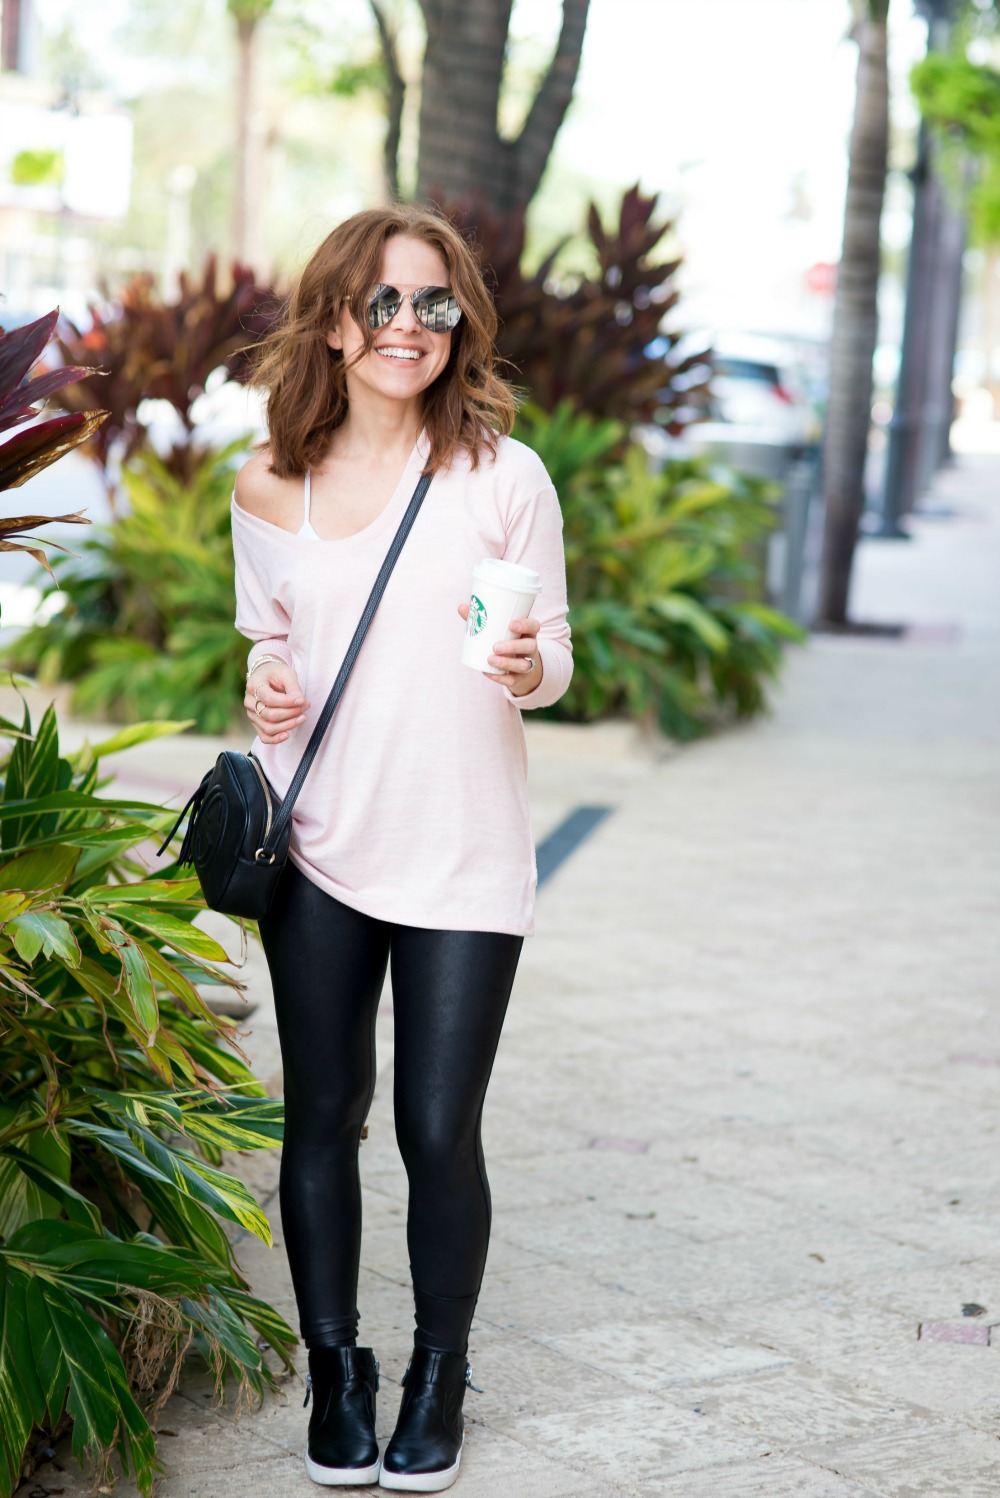 What to wear in the fall when it's warm out // the modern savvy